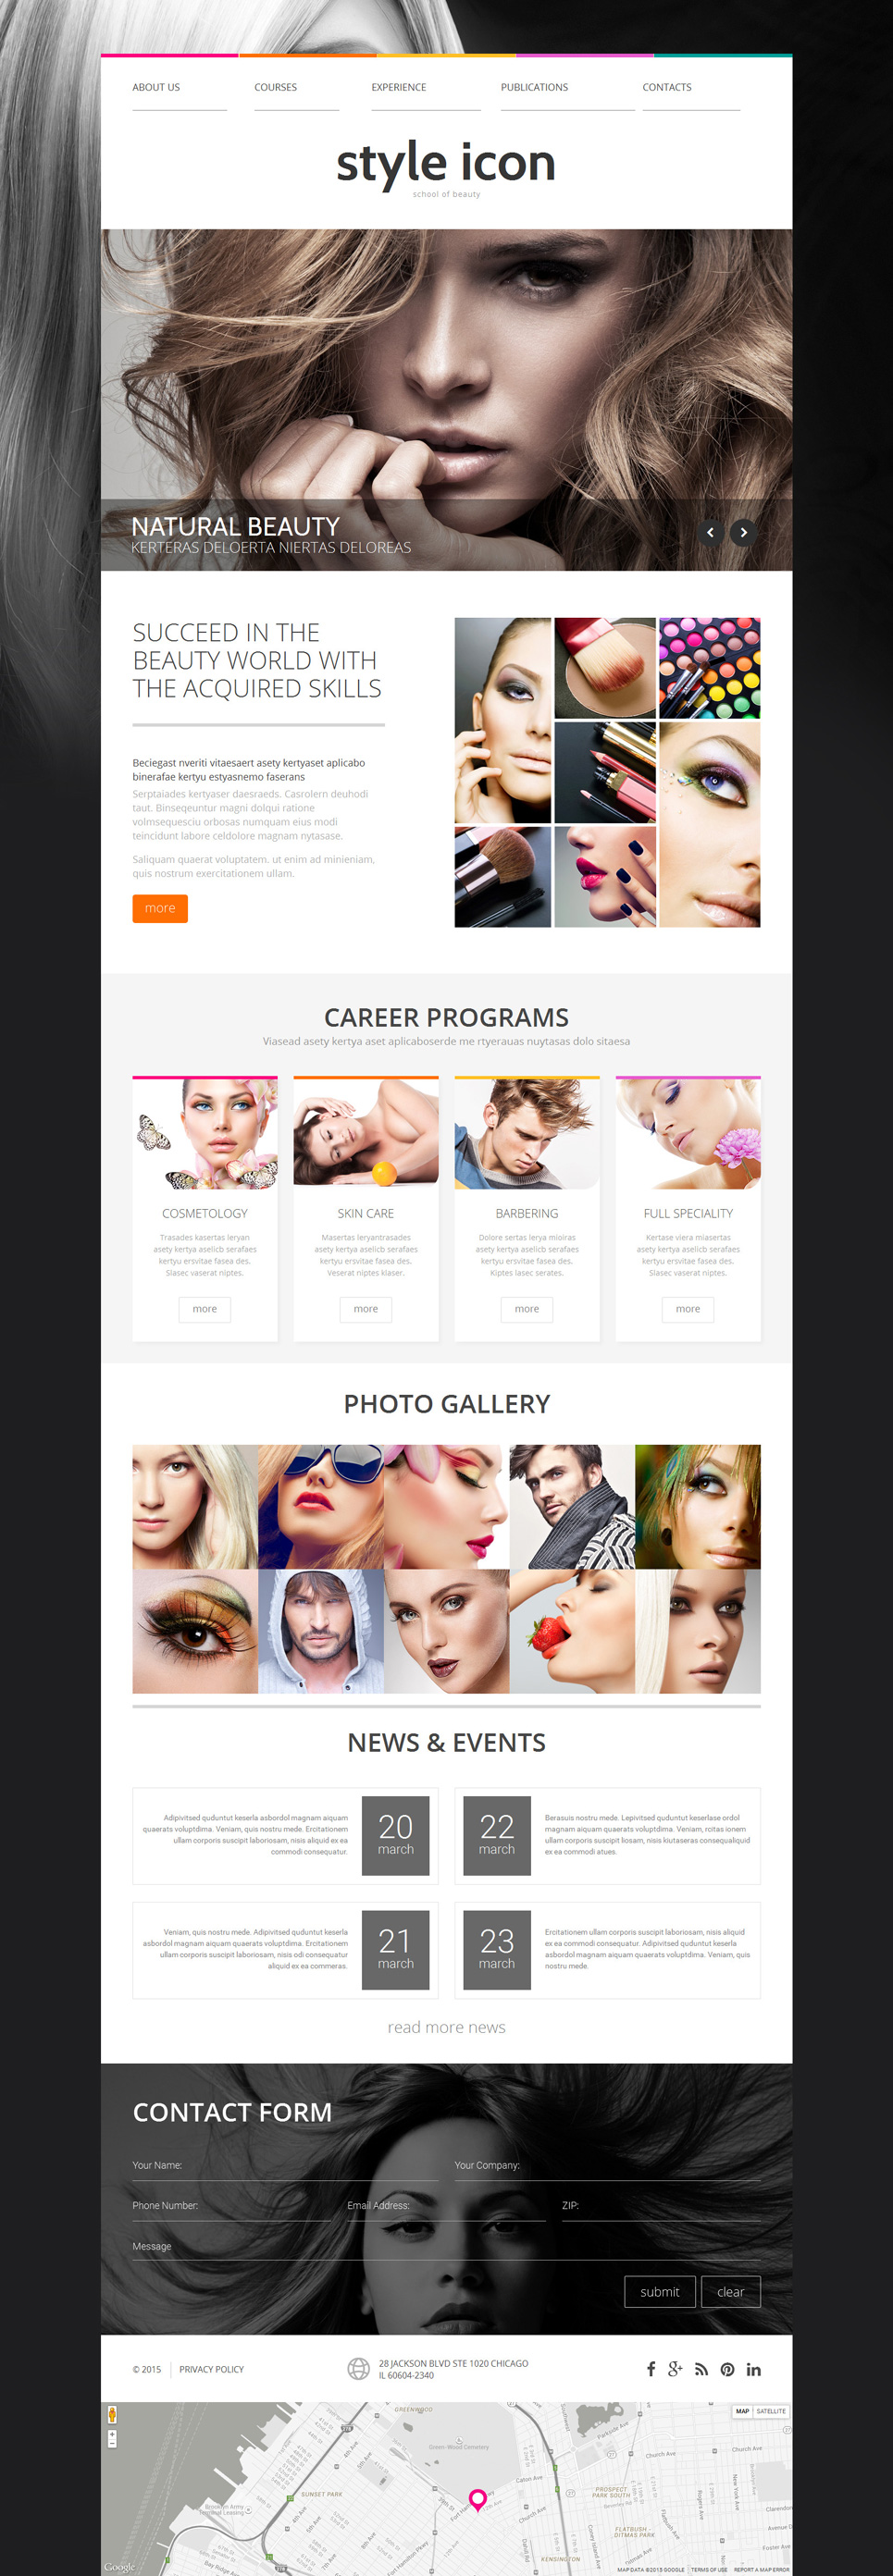 Style Icon template illustration image